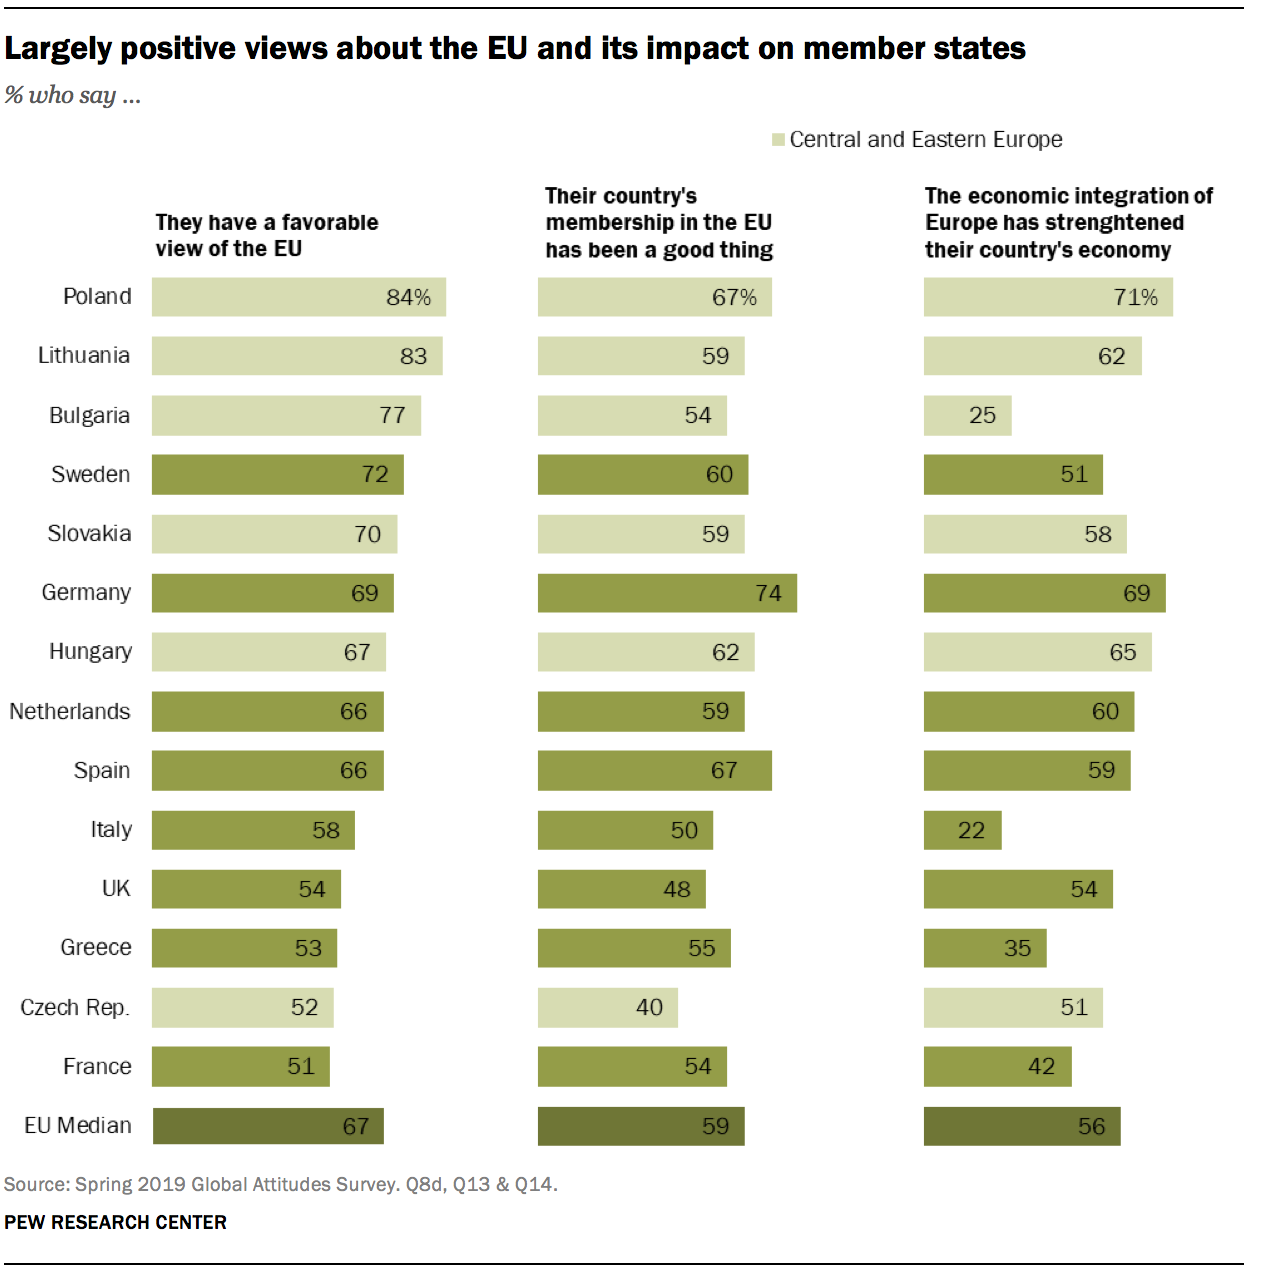 Largely positive views about the EU and its impact on member states